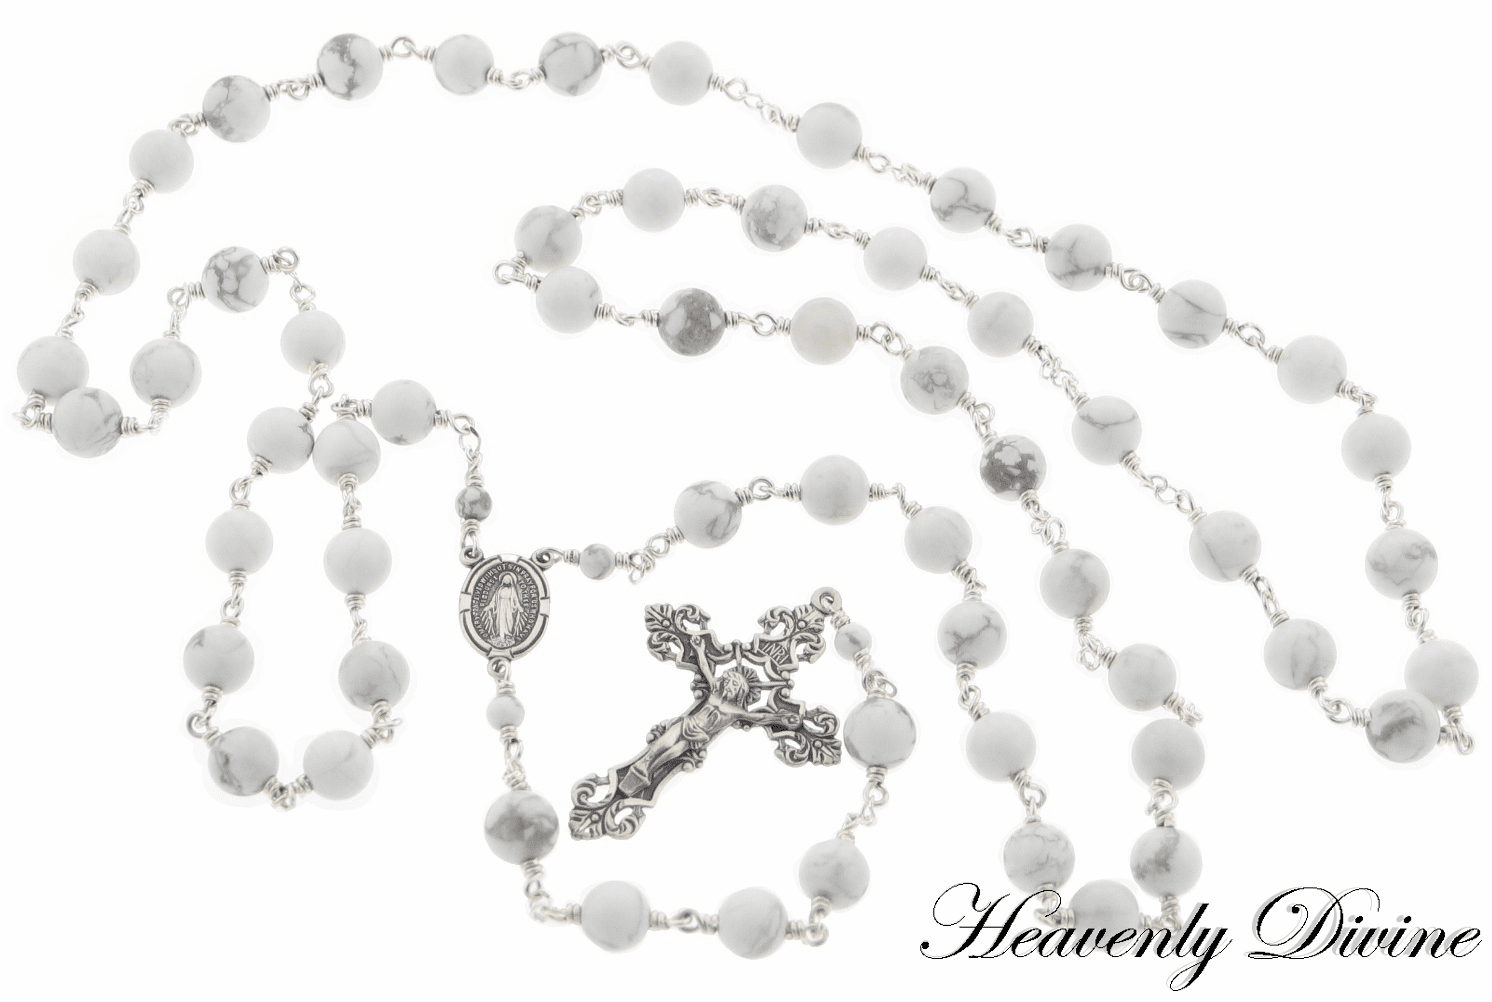 White Howlite Sterling Silver Rosary by Heavenly Divine